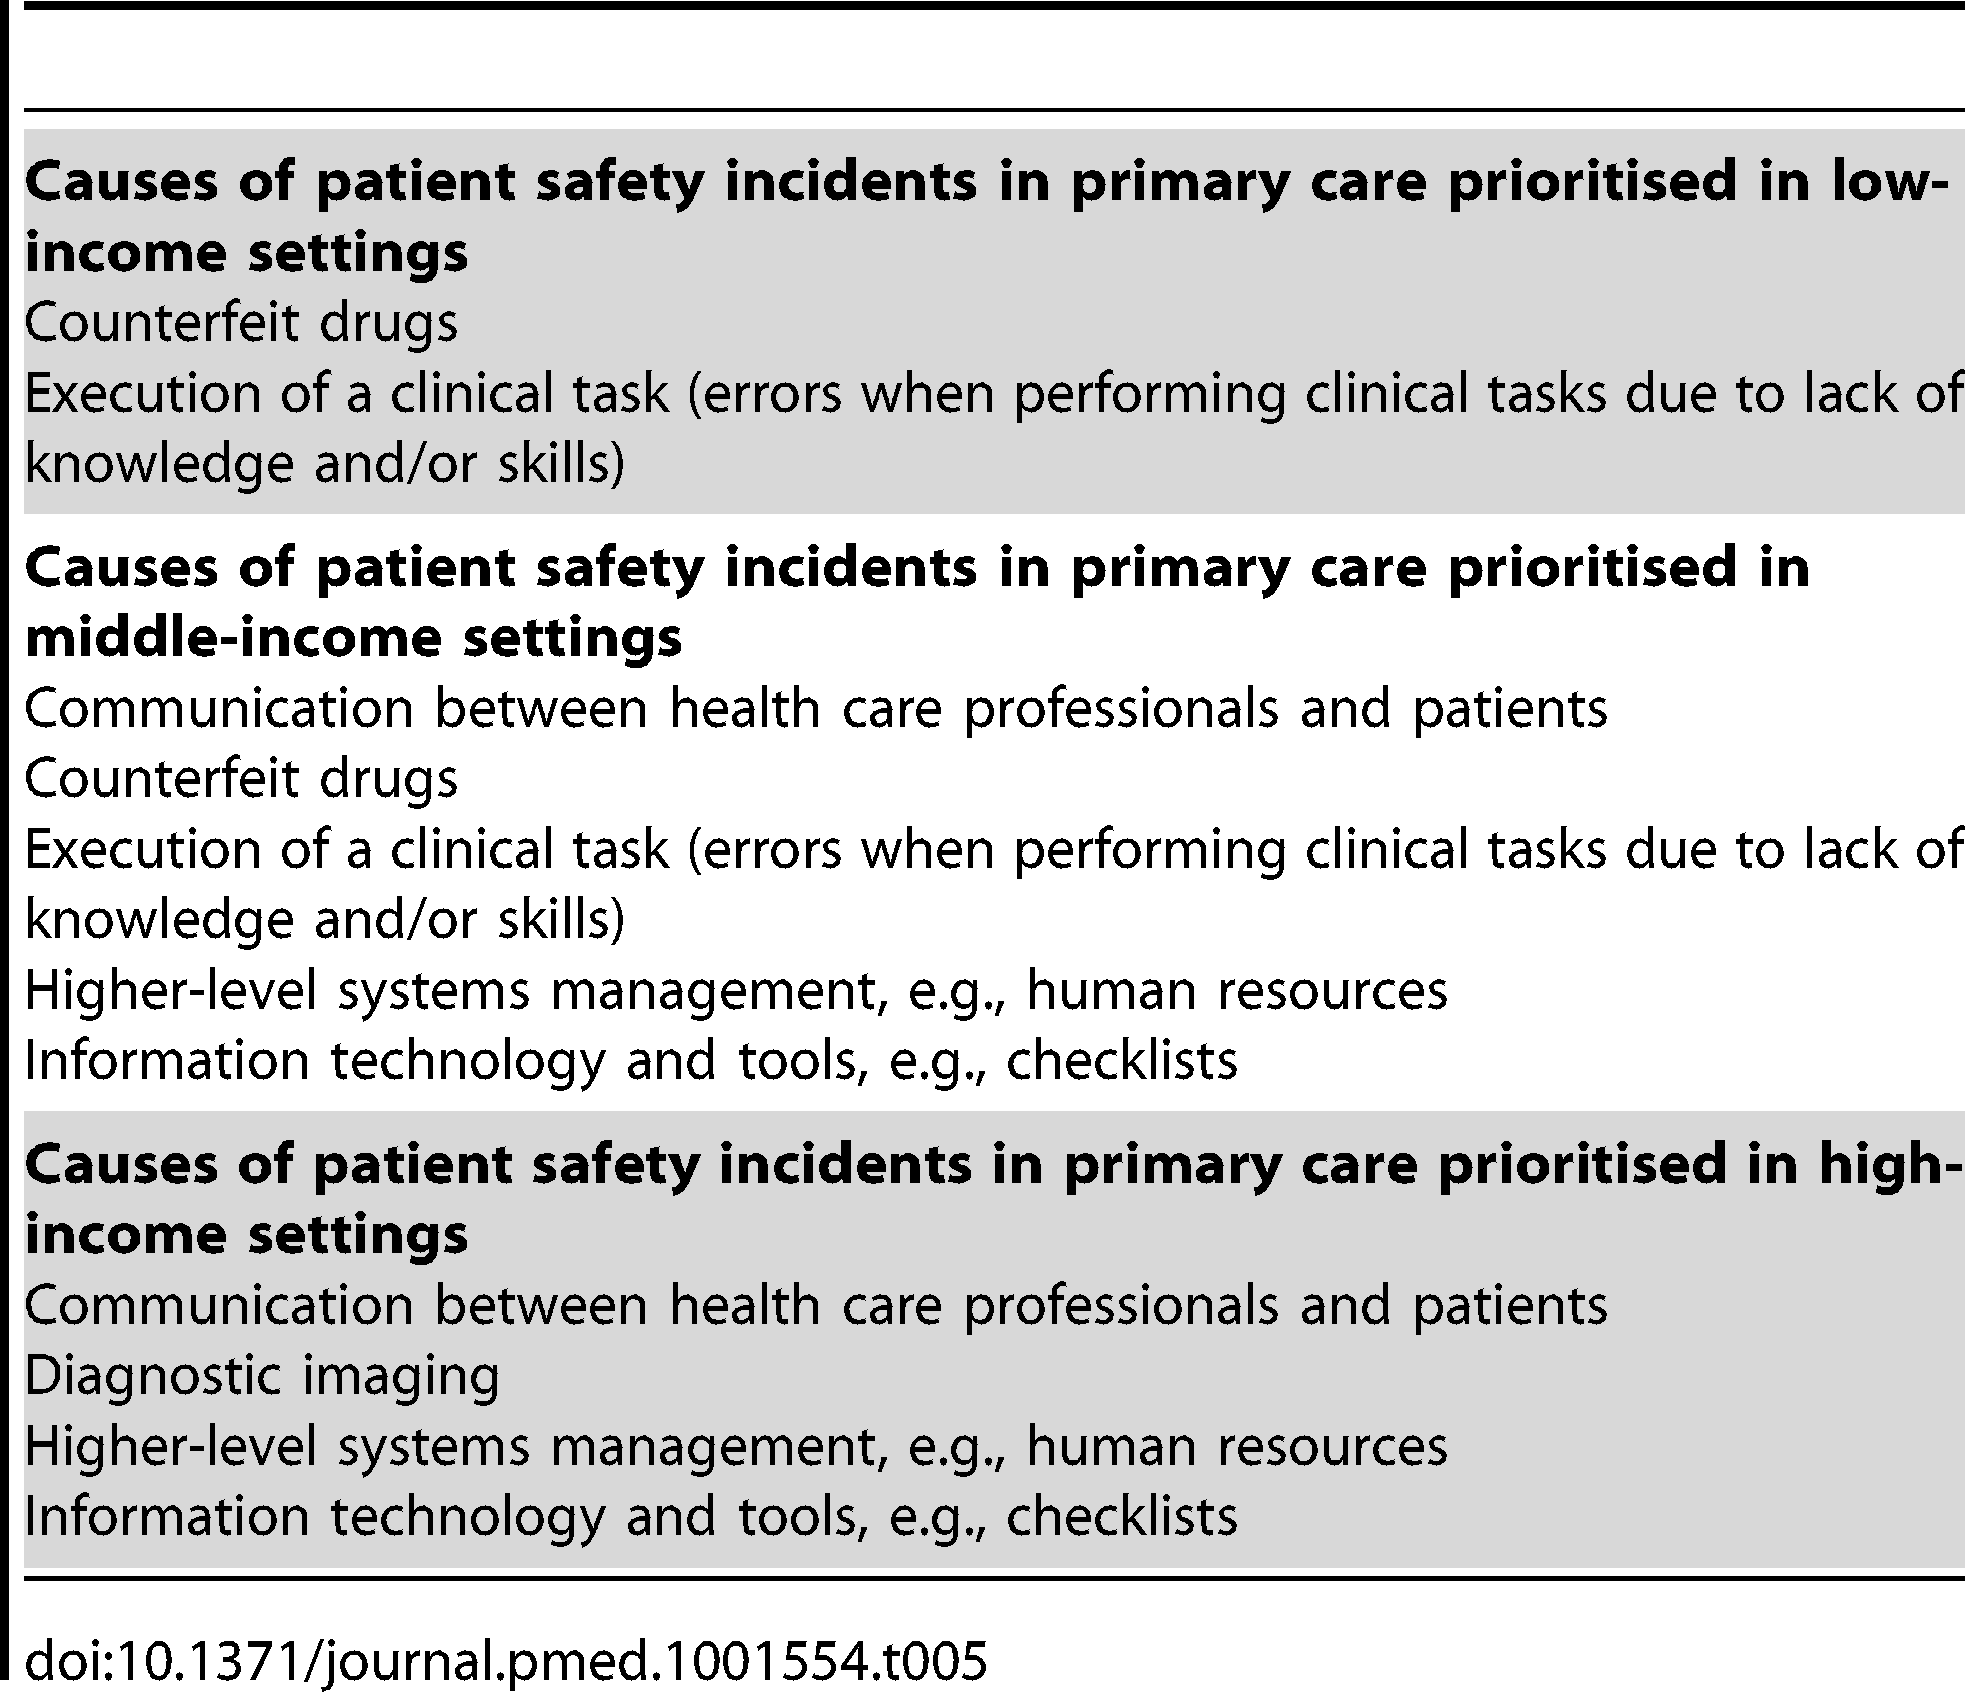 Items relating to causes of patient safety incidents and associated harm that were considered to be important by over 80% of participants after round 3 in low-, middle-, and high-income settings.